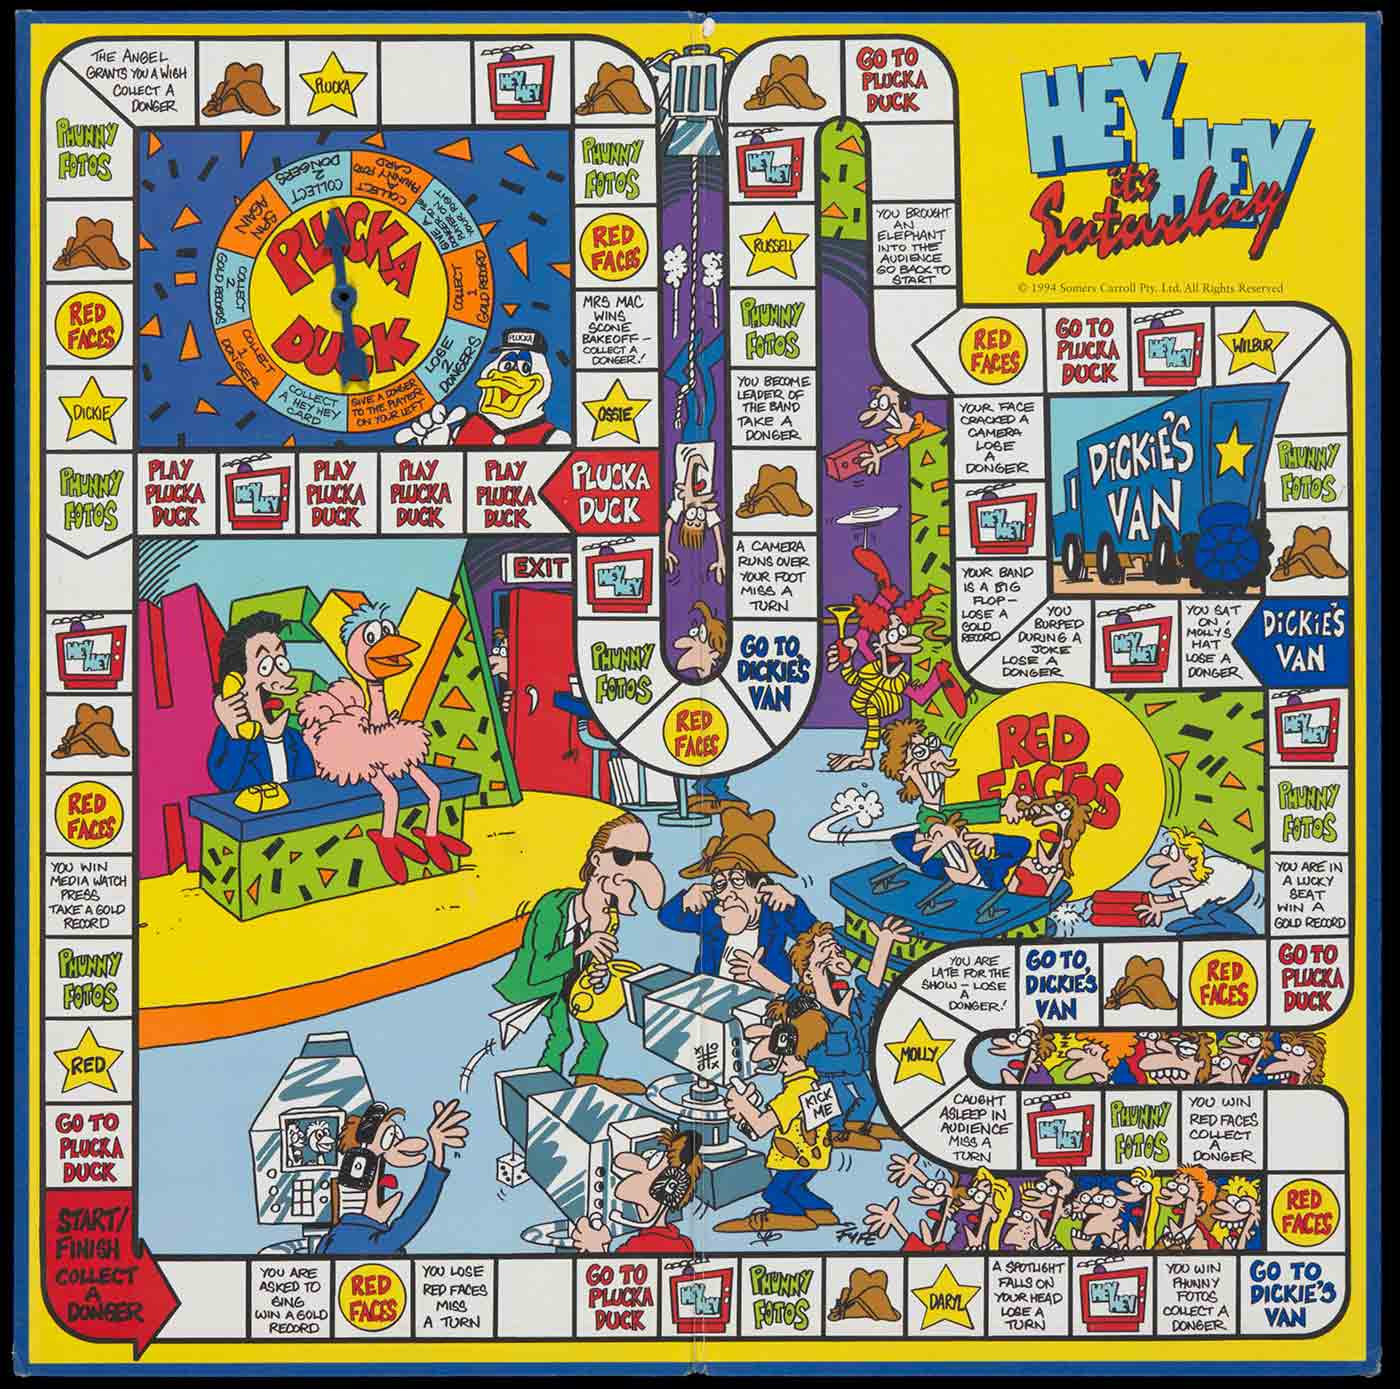 A game board with blue paper exterior and game surface interior, inscribed 'HEY HEY it's Saturday'. The interior shows white game spaces, text and illustrations in colour. A blue plastic arrow is affixed to the board in the upper left quadrant. - click to view larger image